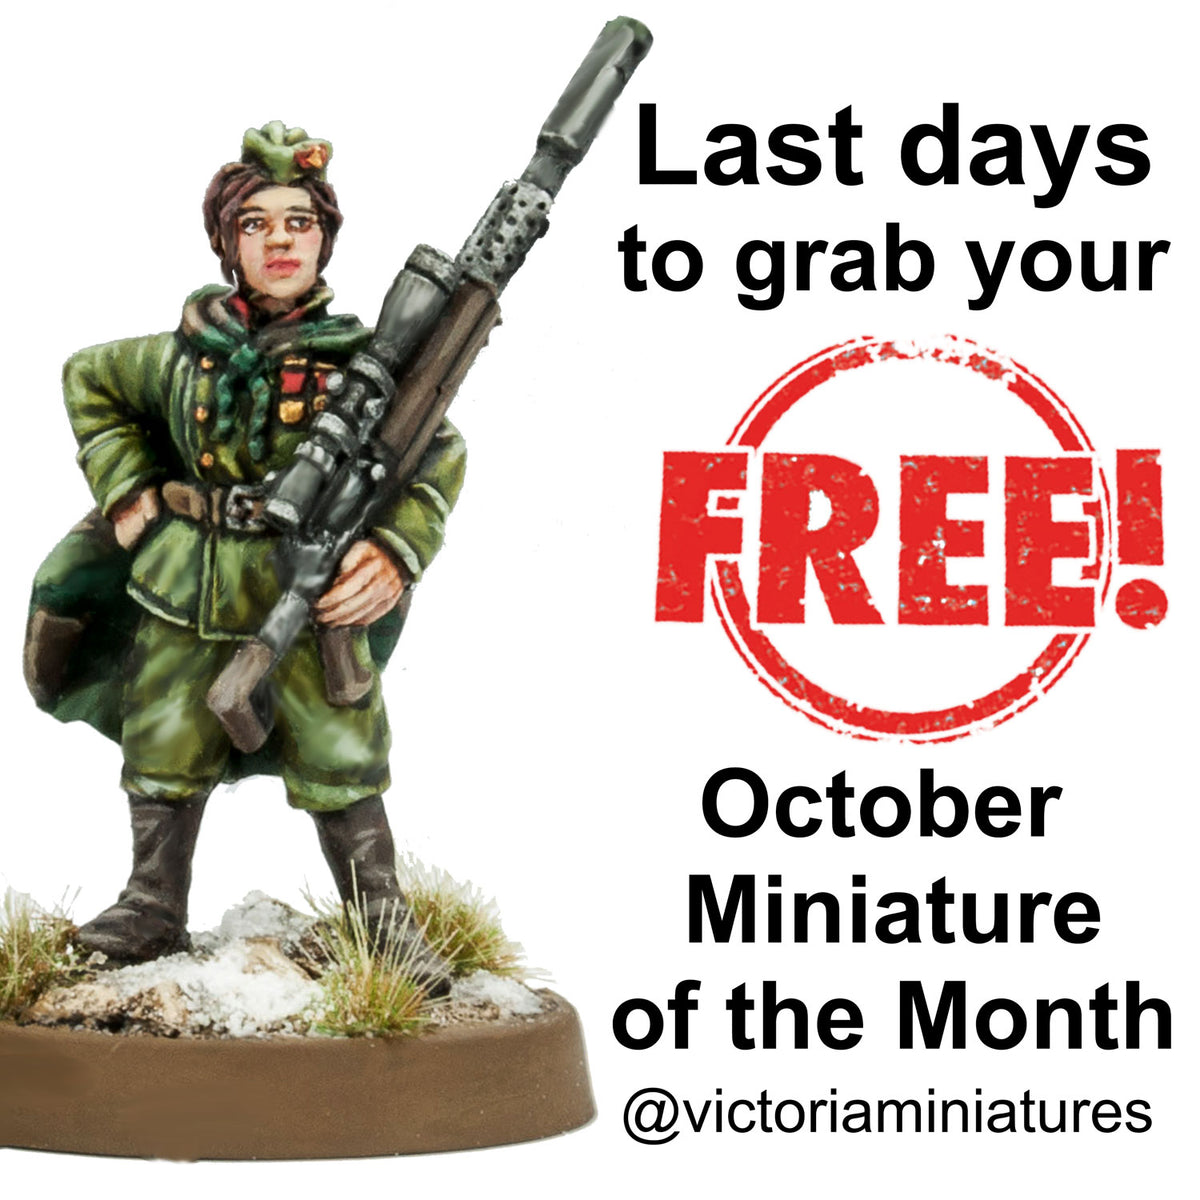 Last Days, for Free October Miniature of the Month.